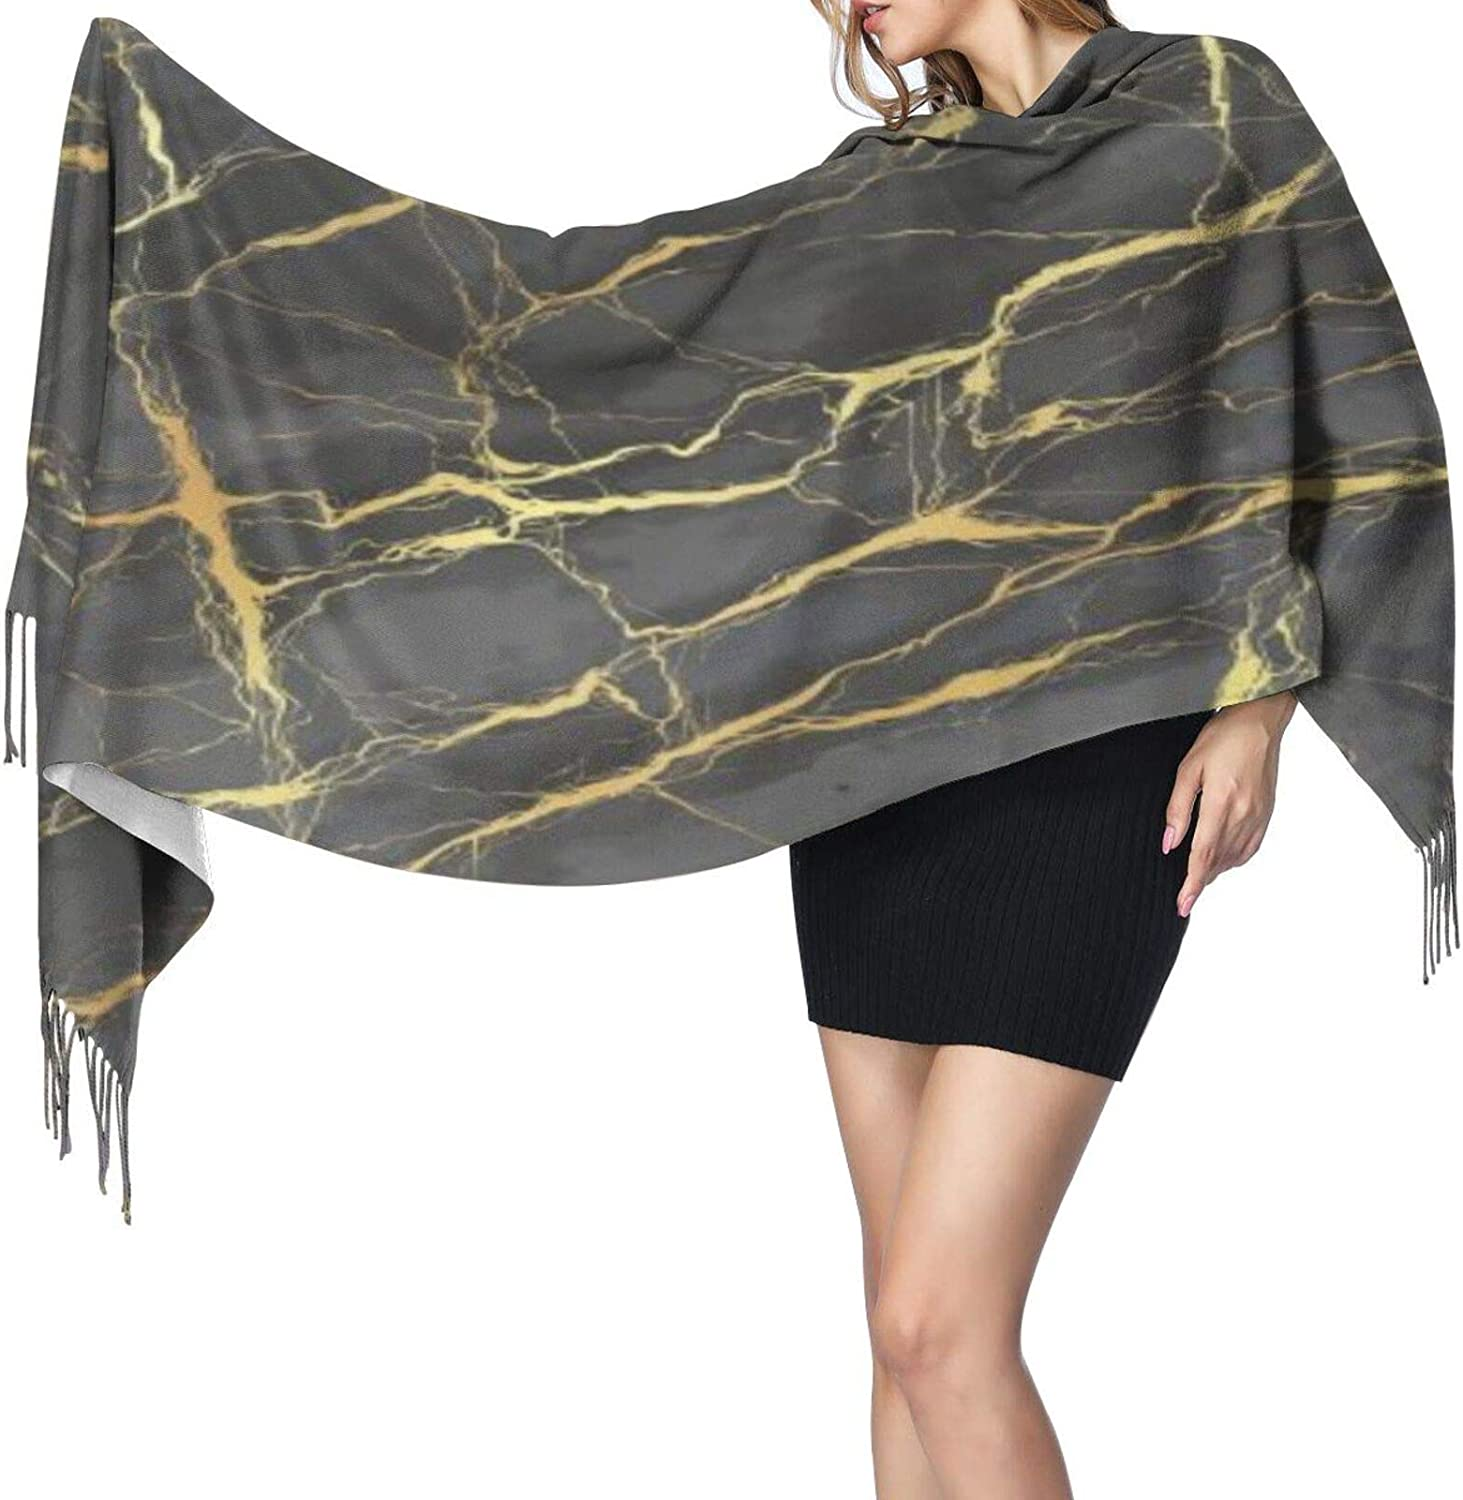 Cashmere fringed scarf Marble golden texture winter extra large scarf